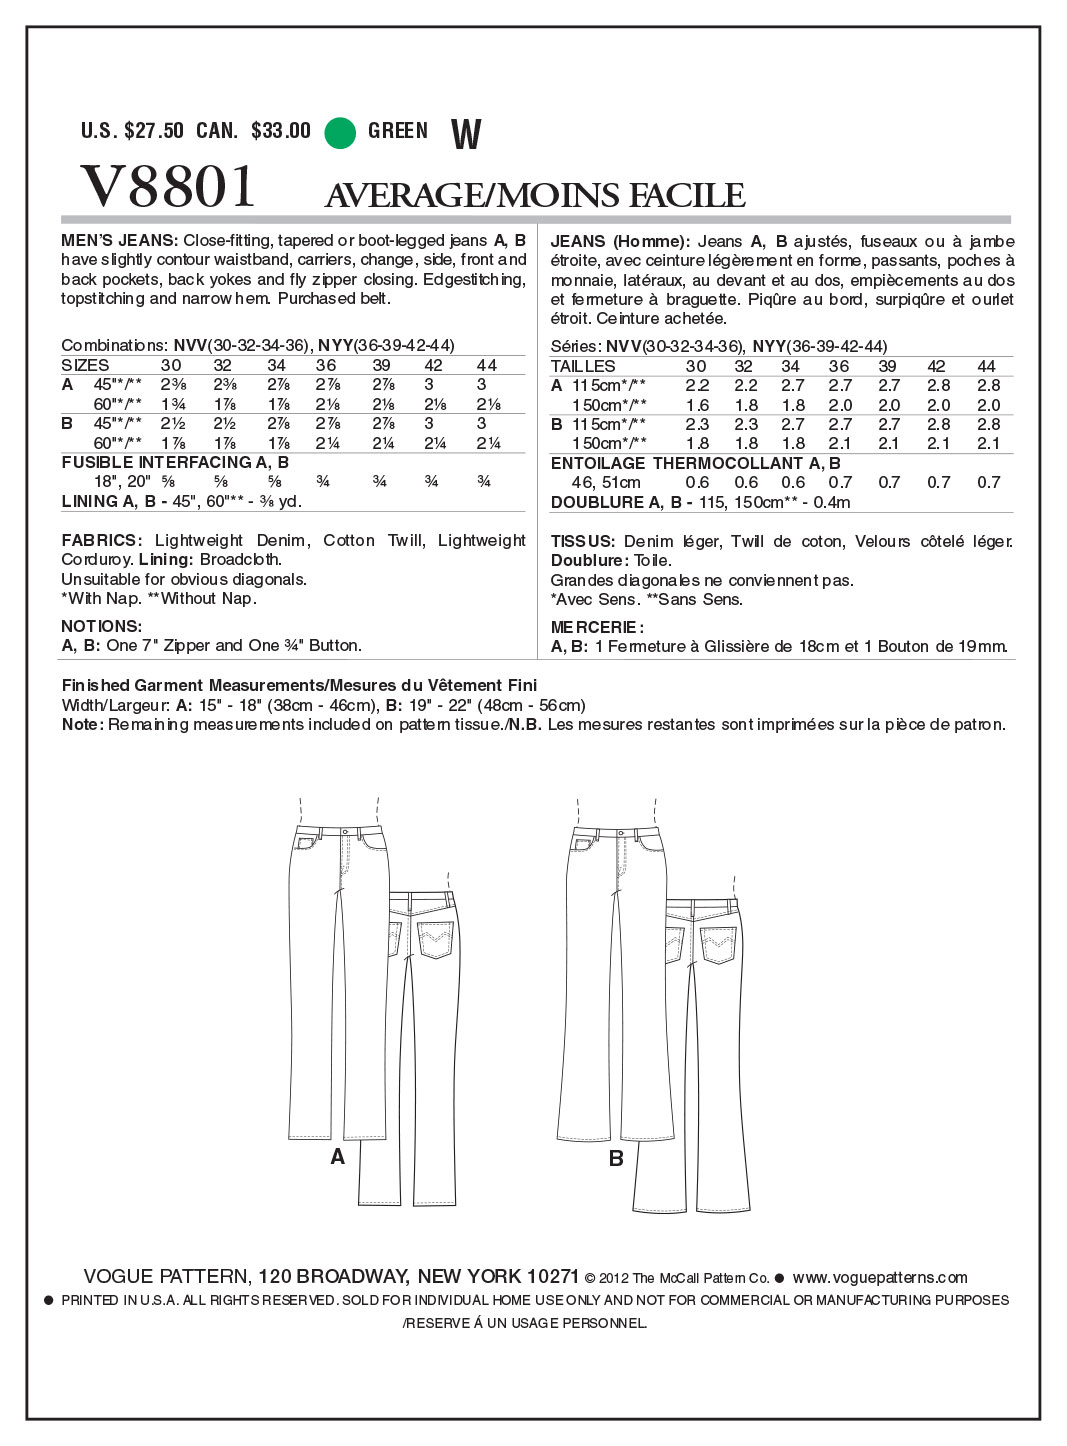 Vogue Patterns Mens Pants-V8801